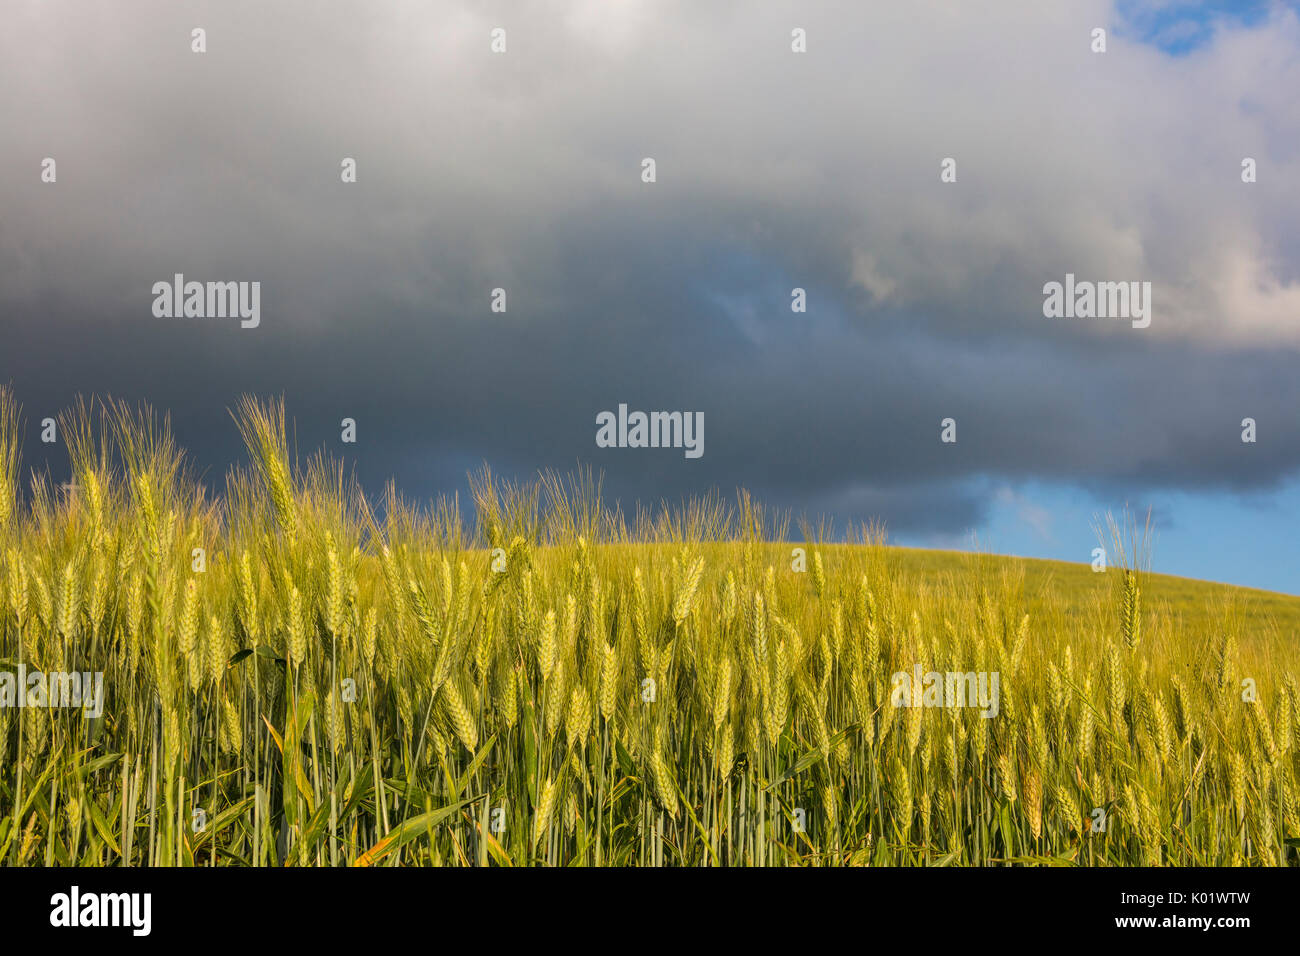 Clouds and sun on the green rolling hills and ears of corn Crete Senesi (Senese Clays) province of Siena Tuscany Italy Europe - Stock Image